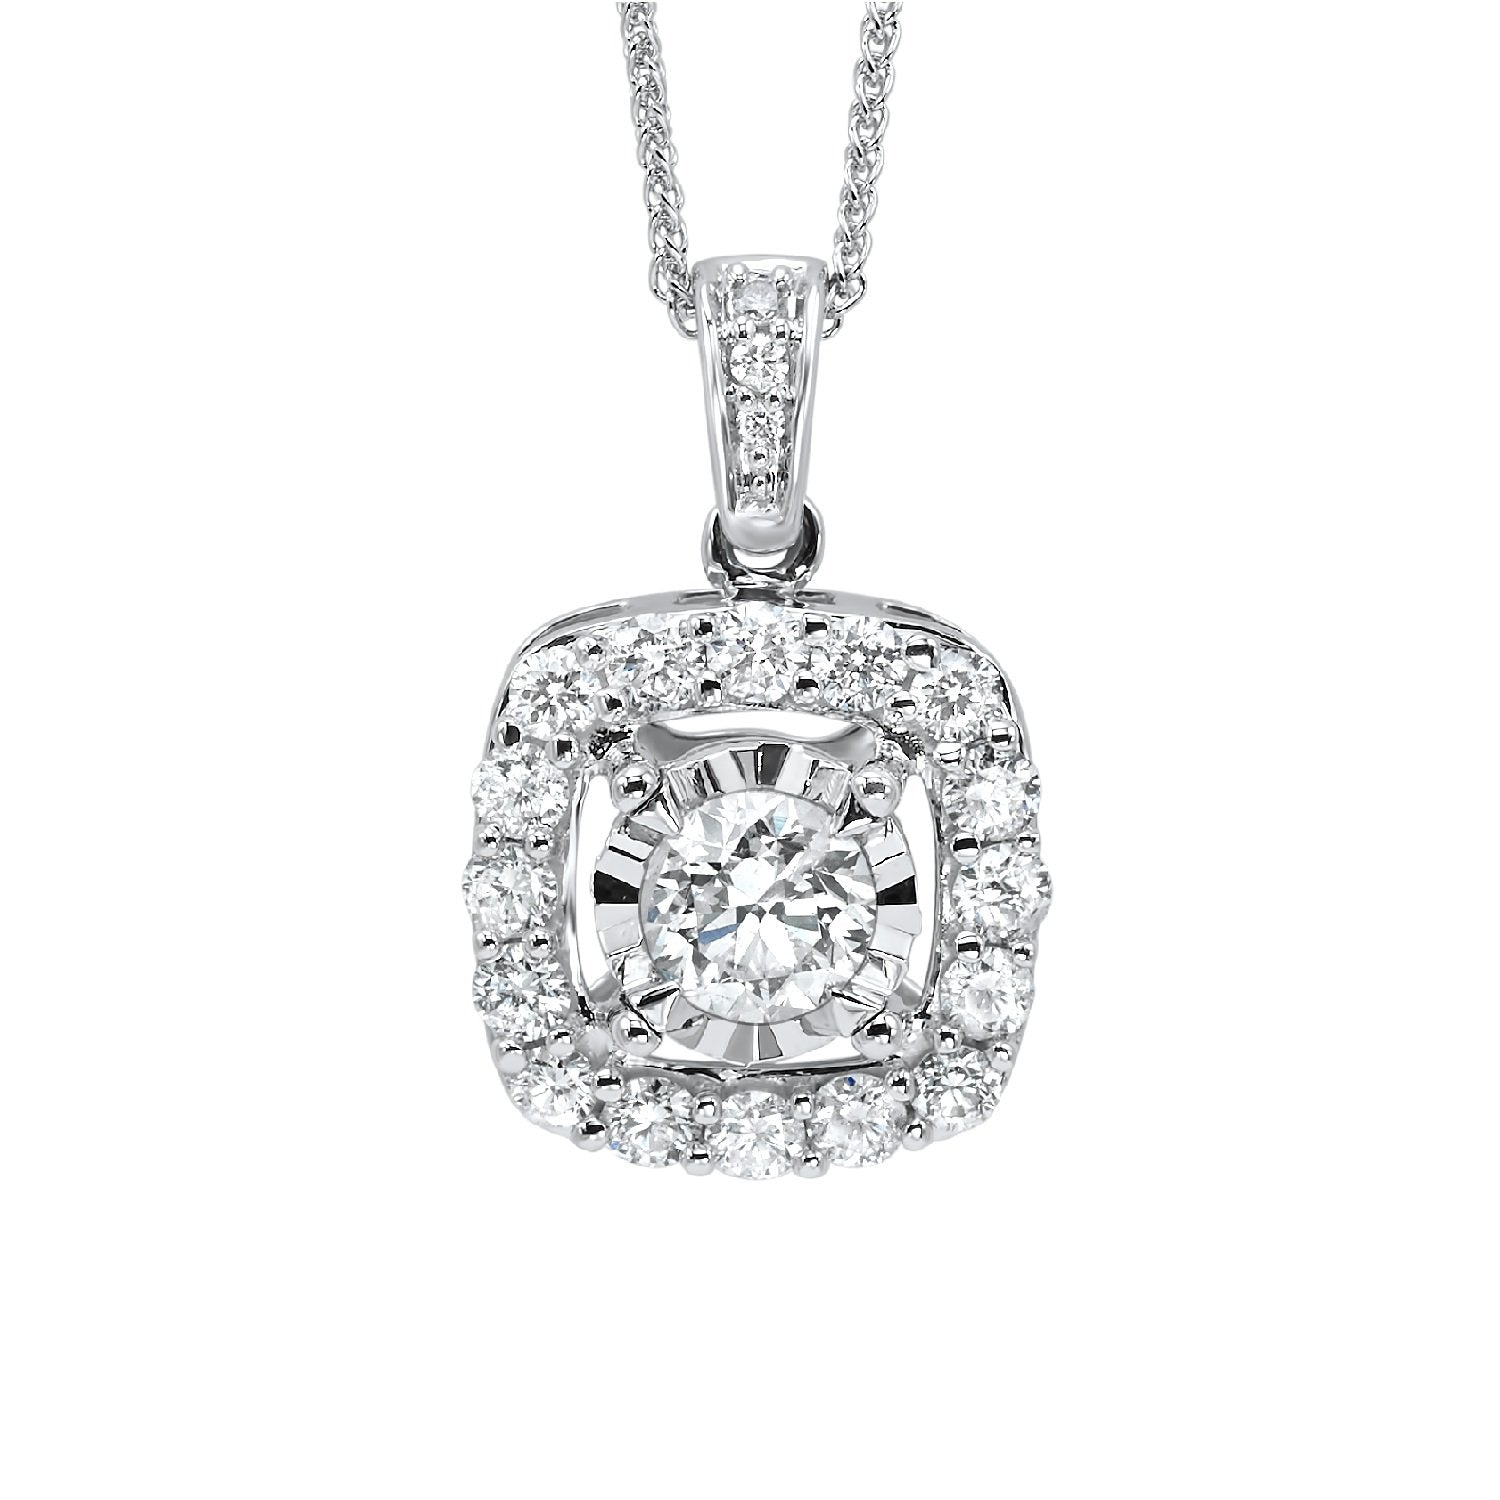 14K White Gold Diamond Pendant 1/2 ct